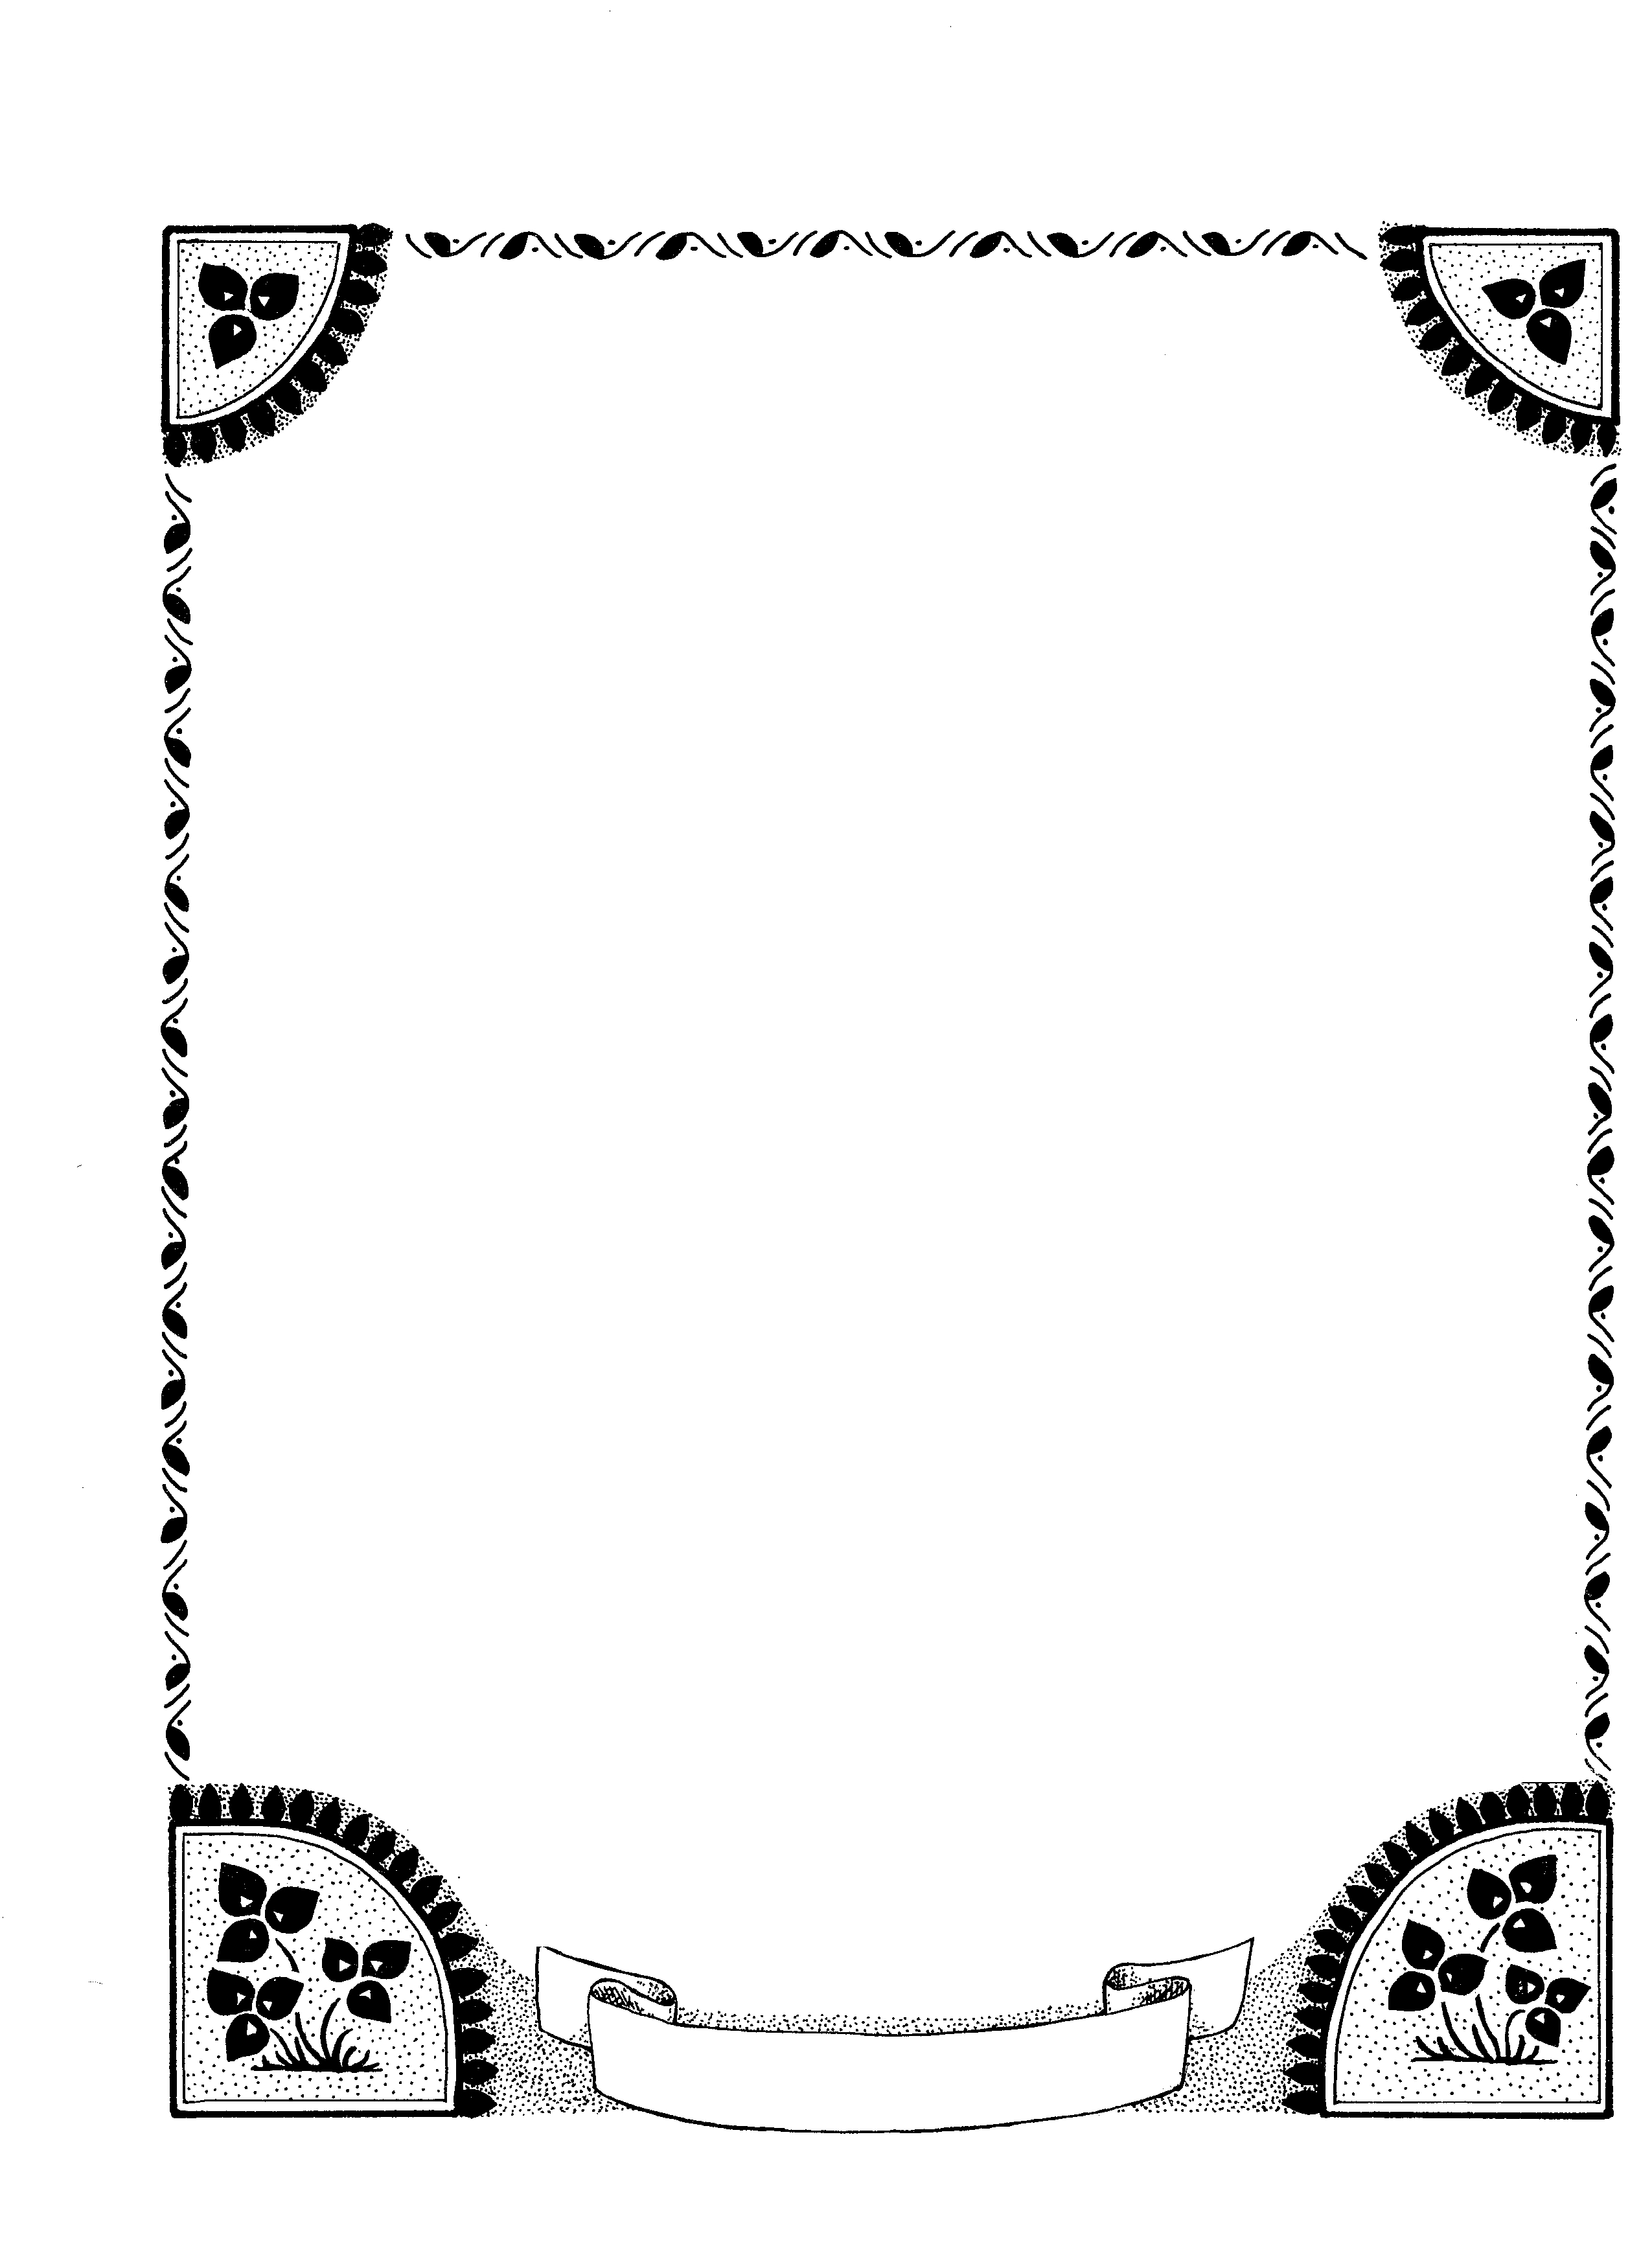 Free Page Borders, Download Free Clip Art, Free Clip Art on Clipart.